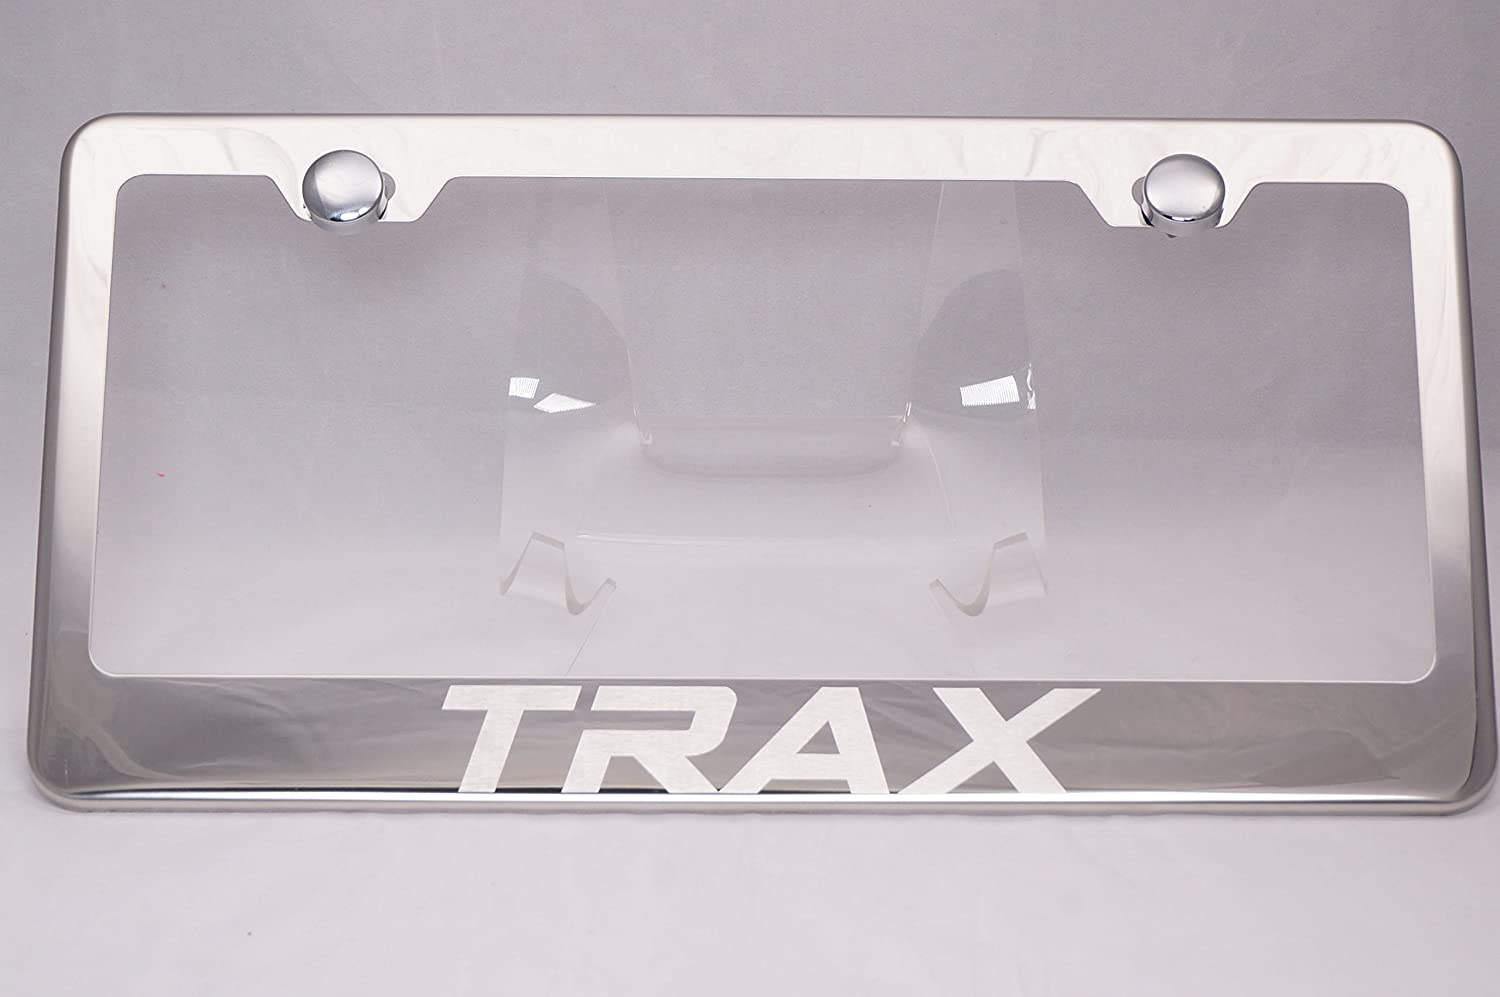 Chevrolet Chrome Logo On Polished Stainless Steel License Plate